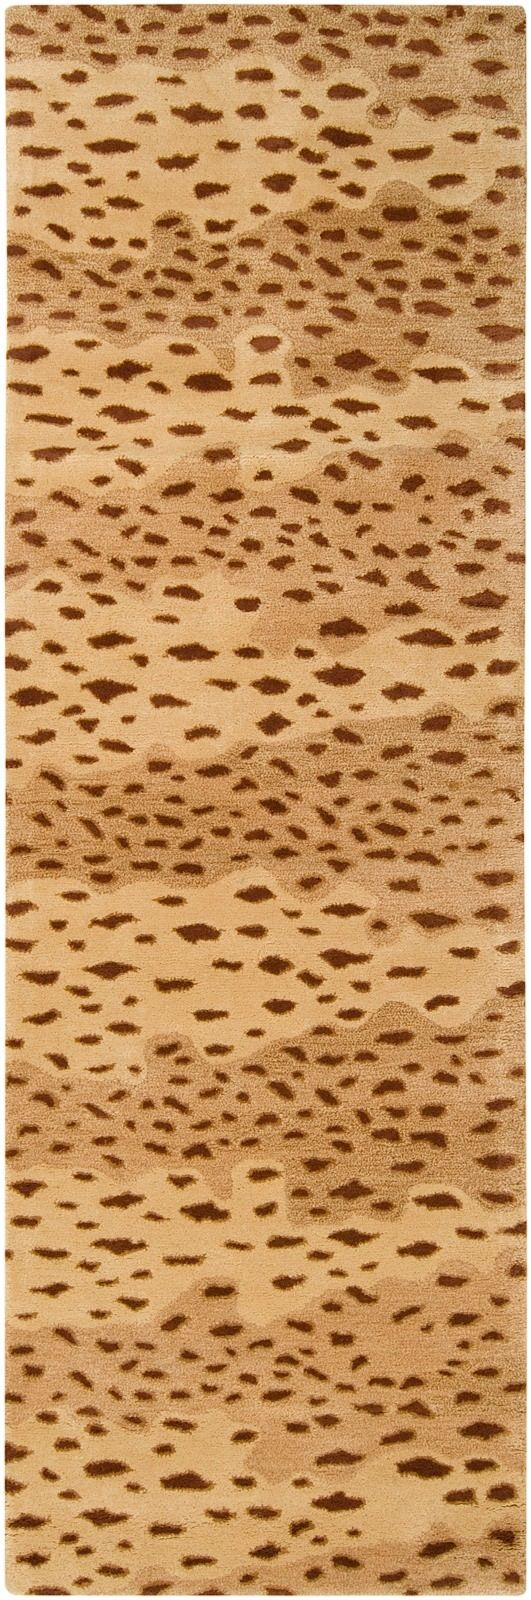 surya safari animal inspirations area rug collection